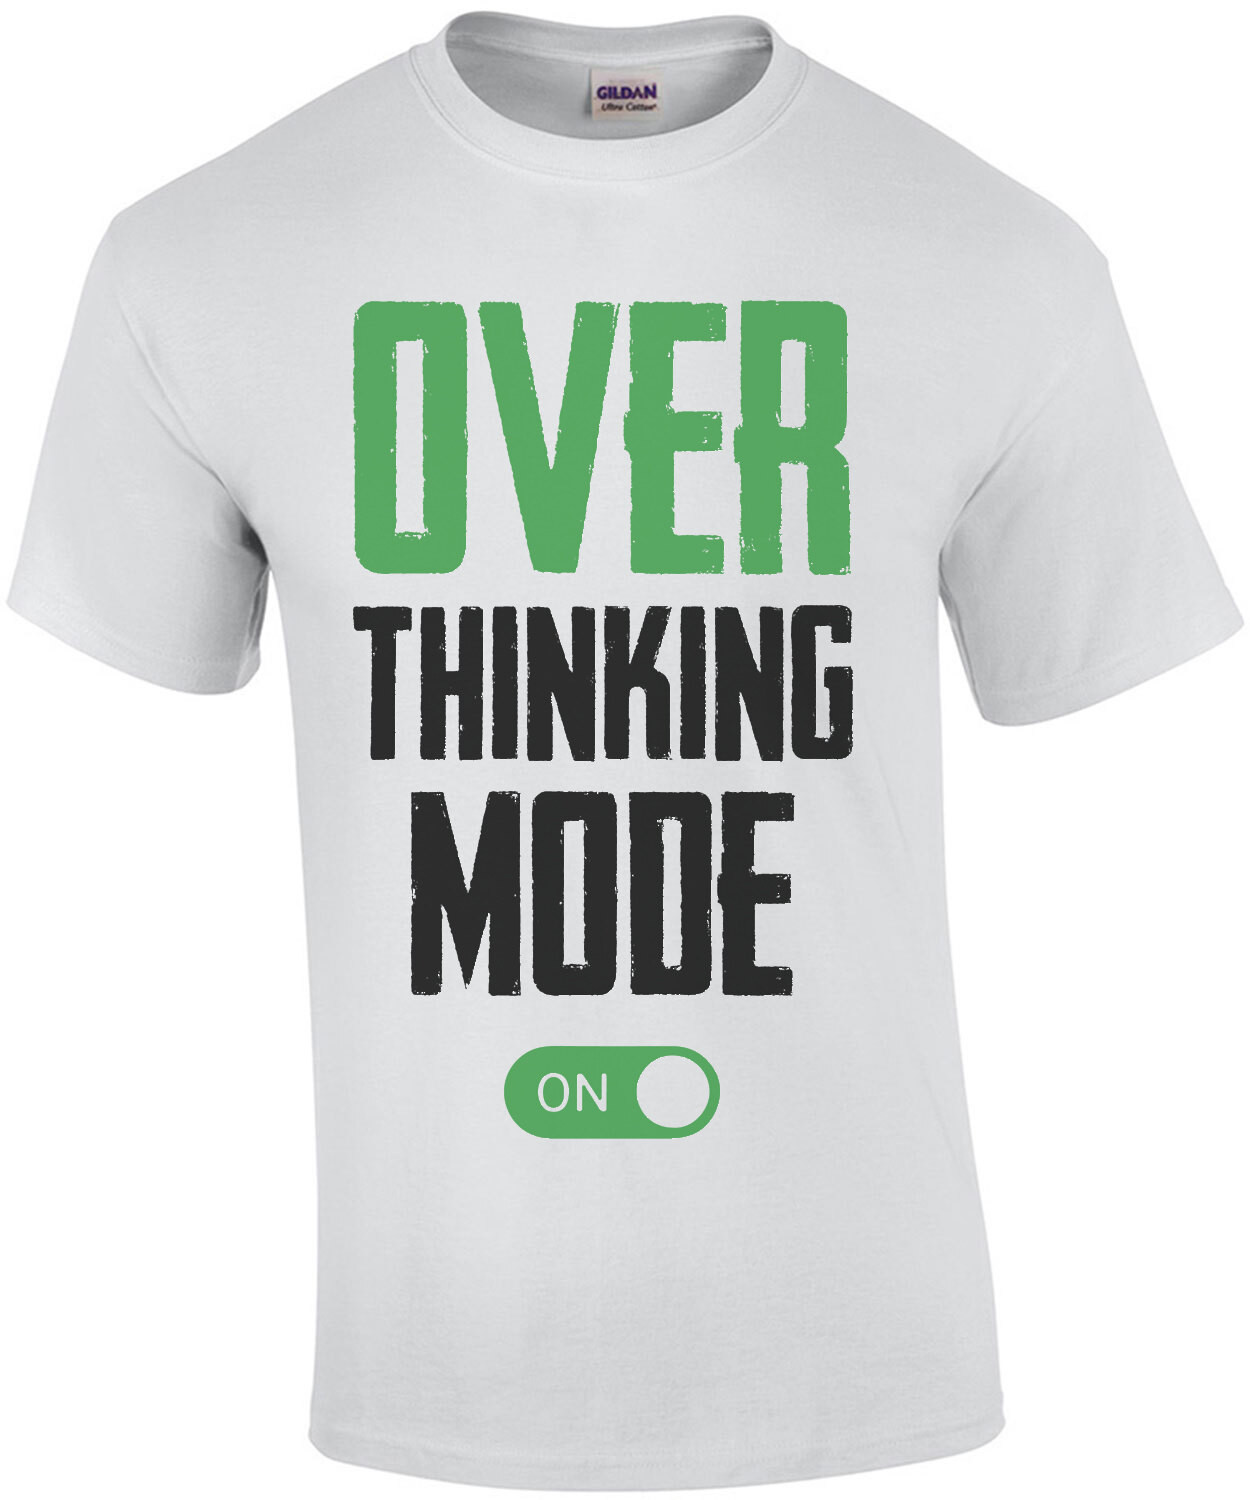 Over thinking mode ON - funny t-shirt